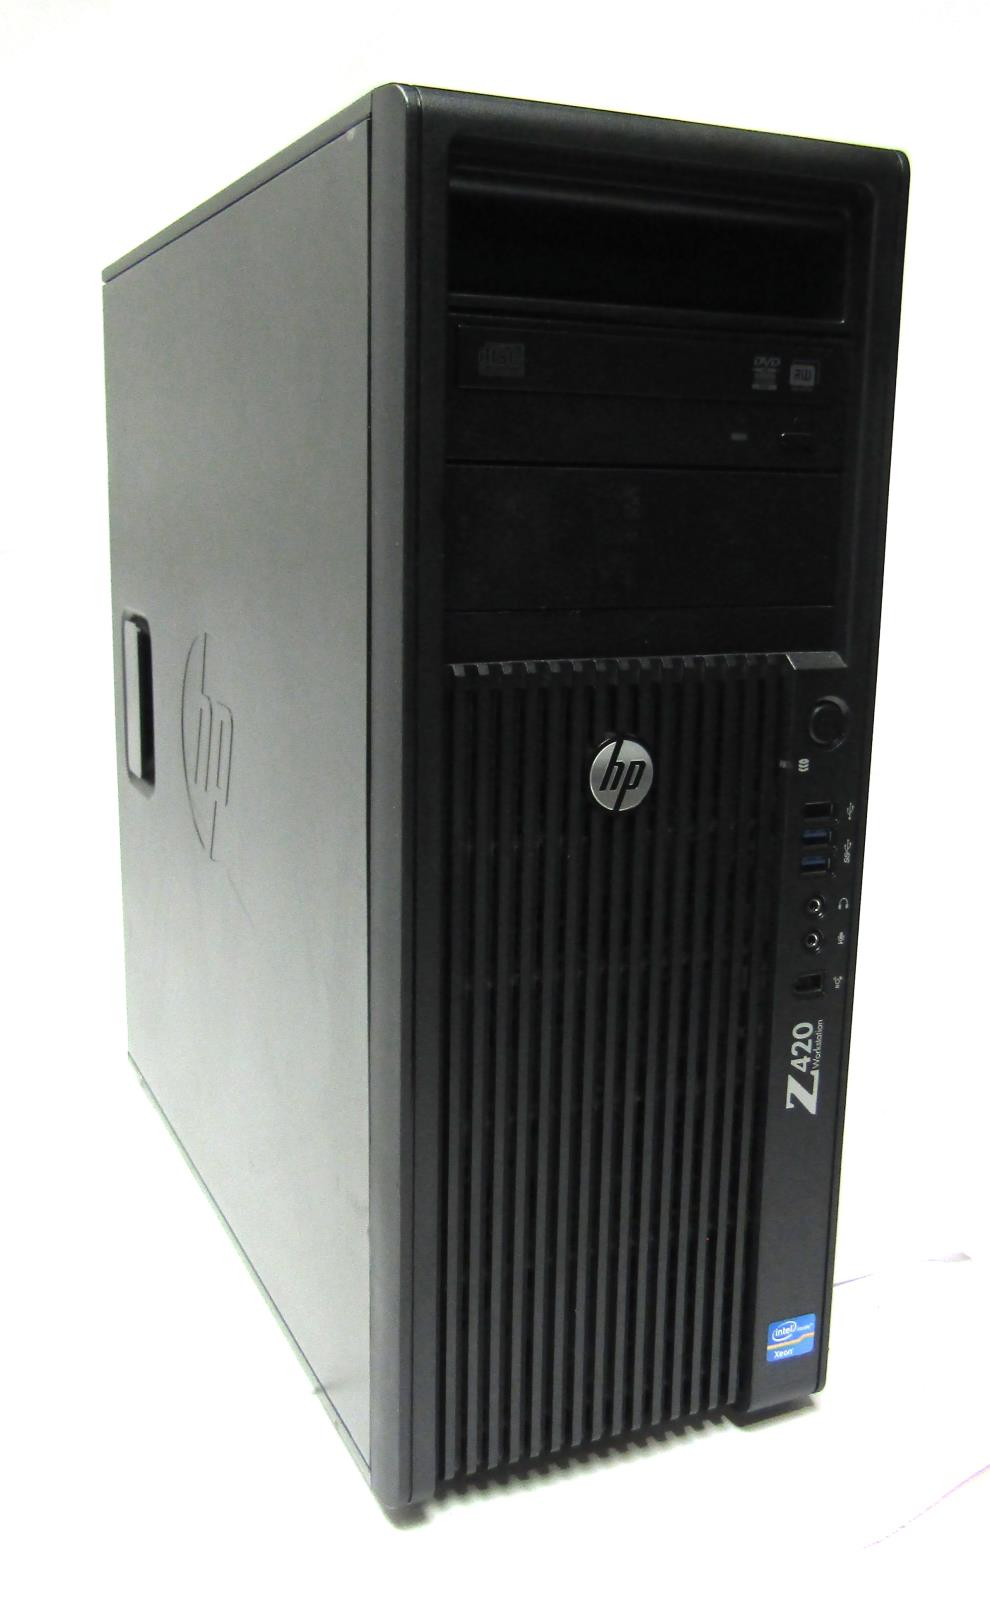 Details about *HP Z420 Workstation   3 20GHz Hex Core Xeon E5-1650   4gb  DDR3   DVD-RW